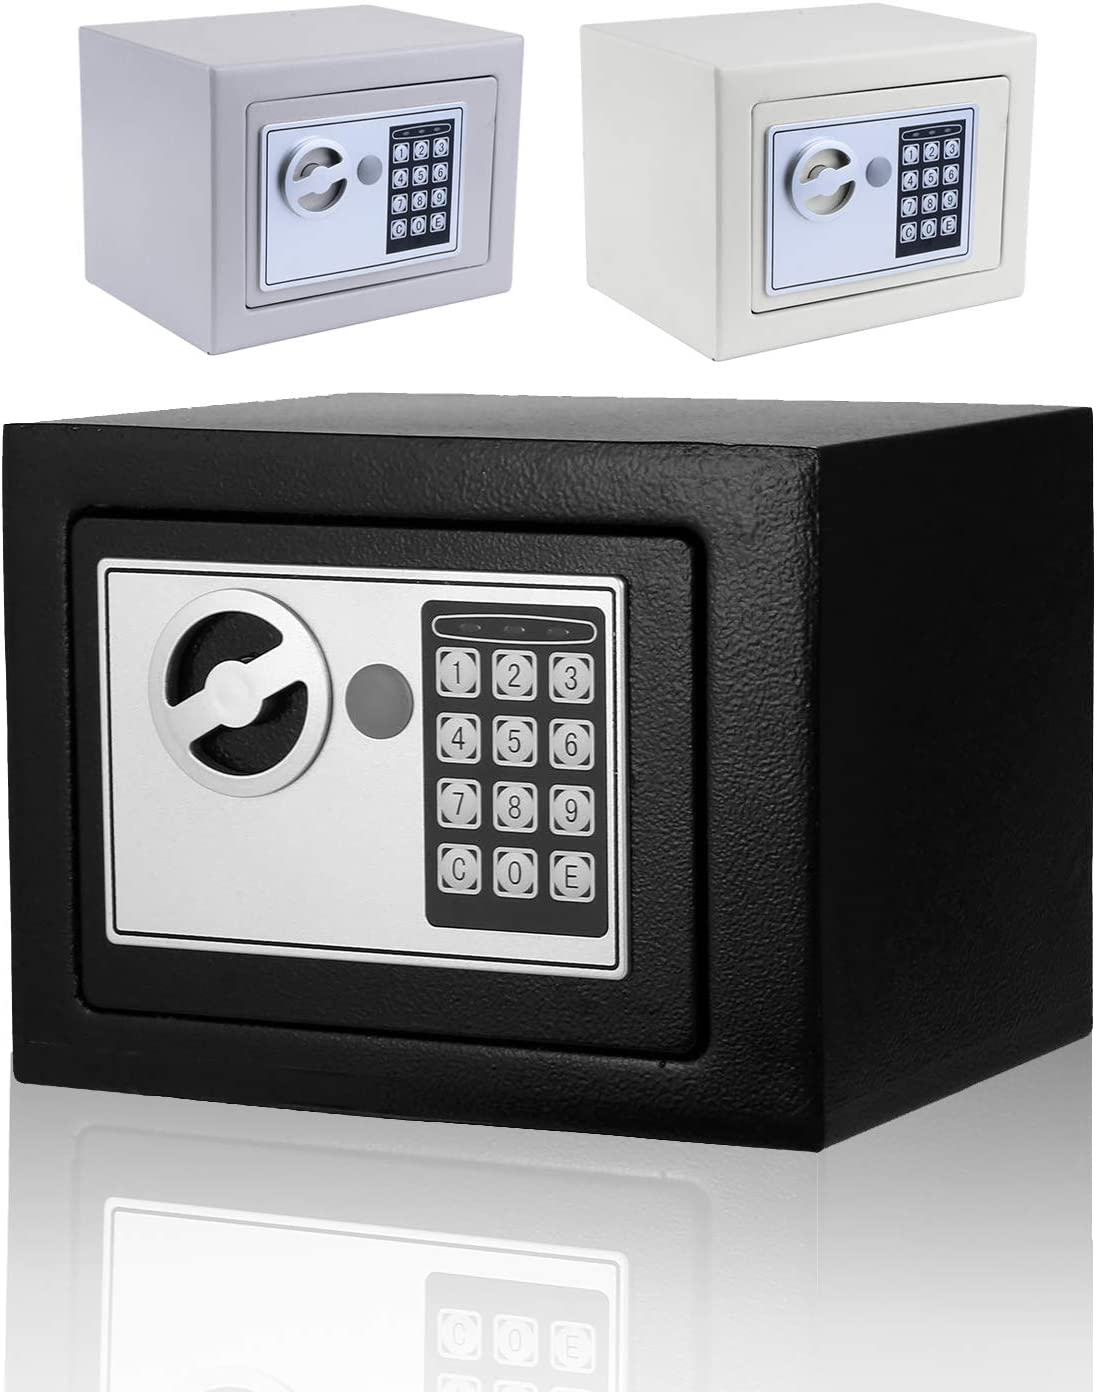 Moroly Security Safe With Digital Electronic Lock Office Home Safe Box Steel Alloy Safe Includes Keys And Batteries Us Stock Black New Amazon Com